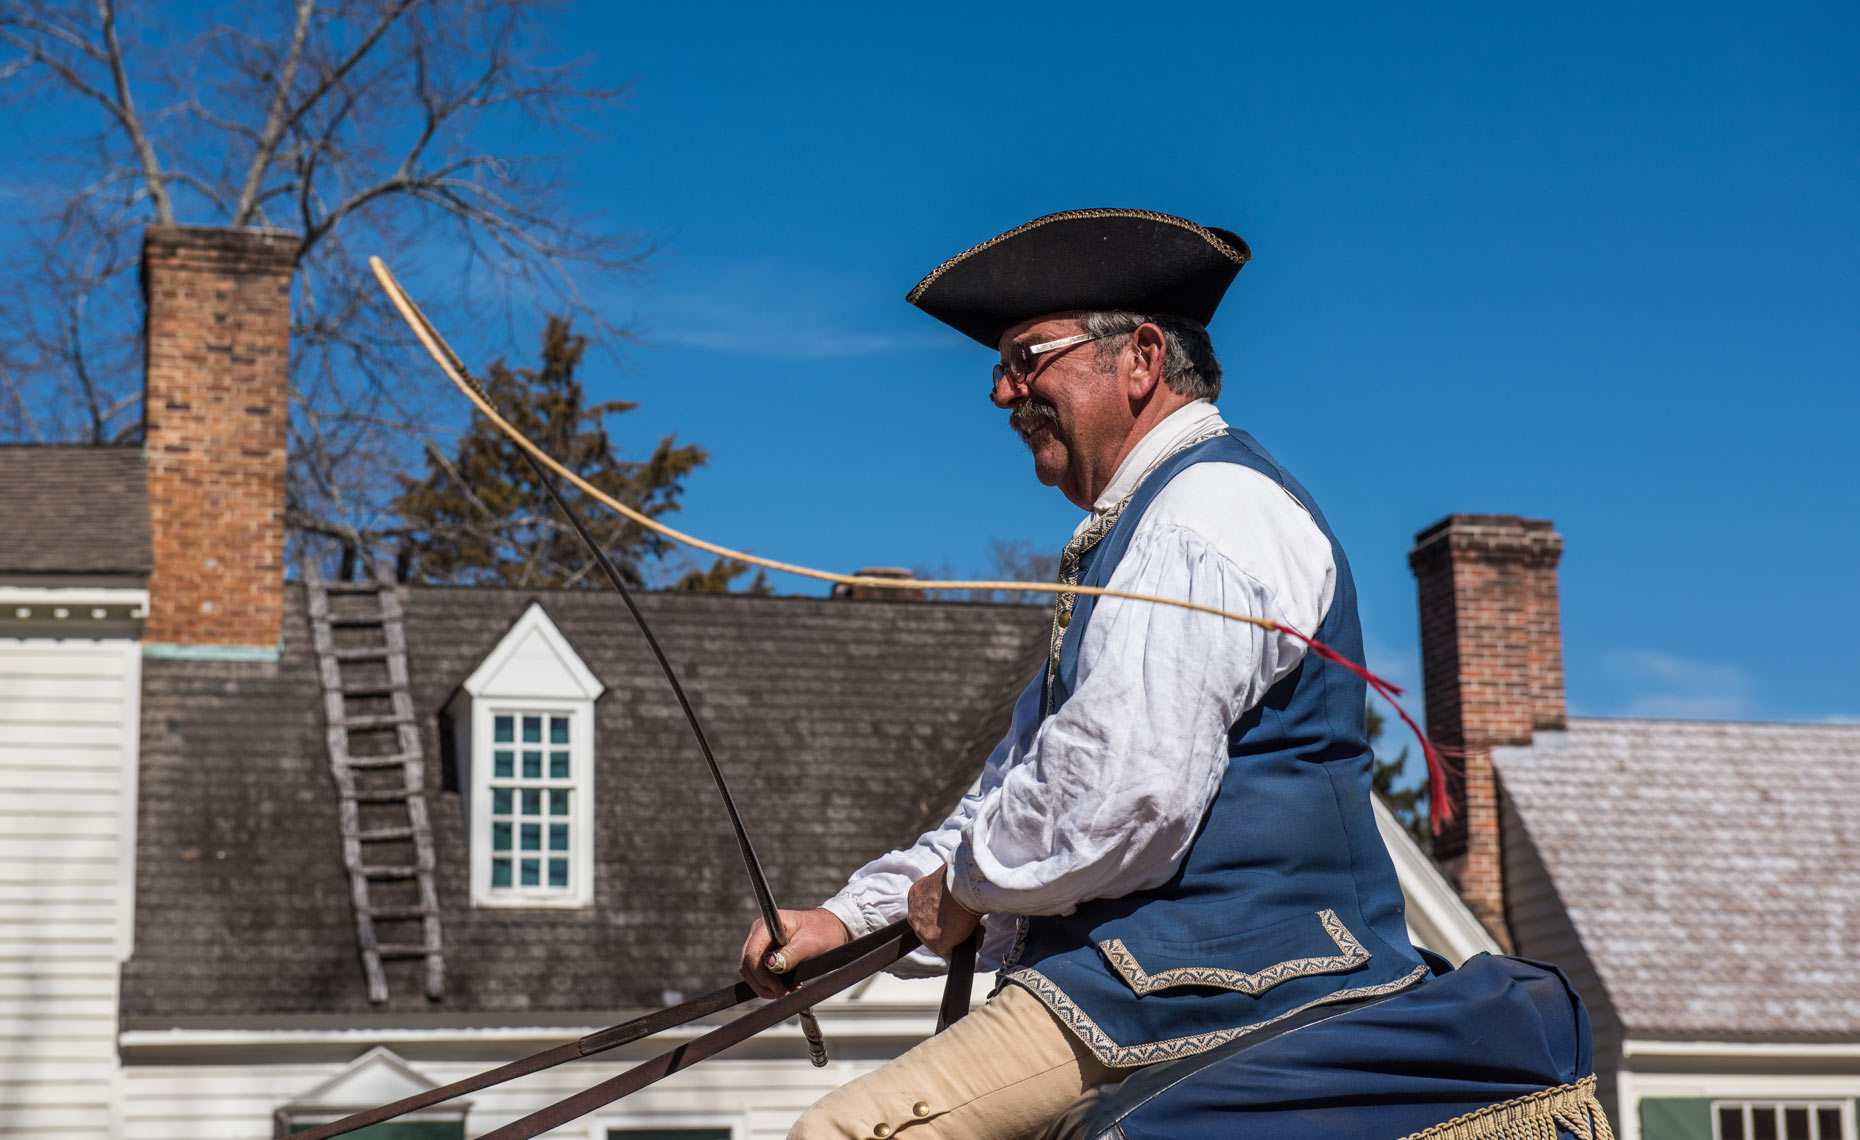 Colton-travel-photography-williamsburg-va-118